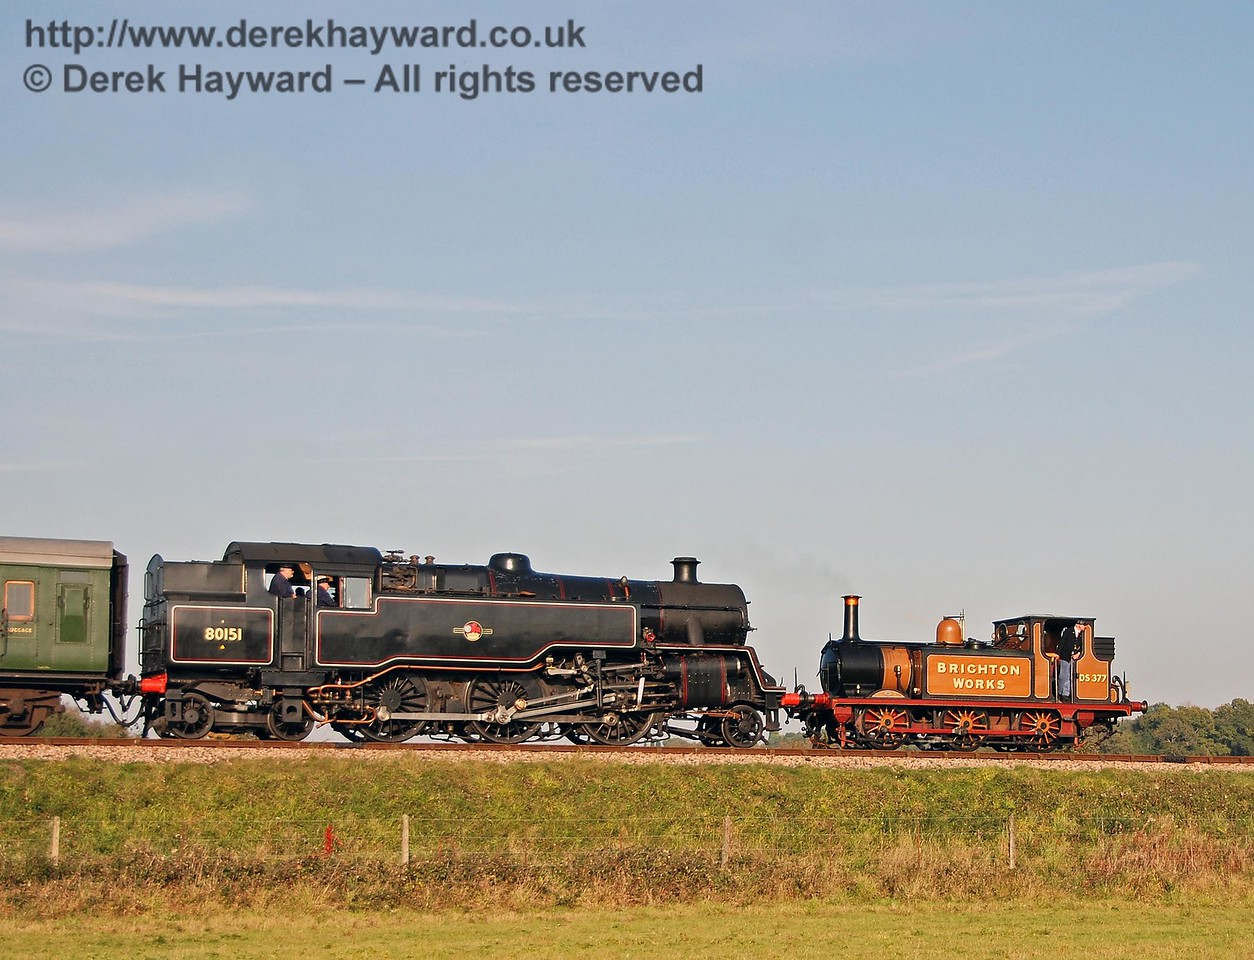 Stepney, running as the Brighton Works shunter, and 80151 on Freshfield Bank en route to Sheffield Park. 21.10.2007